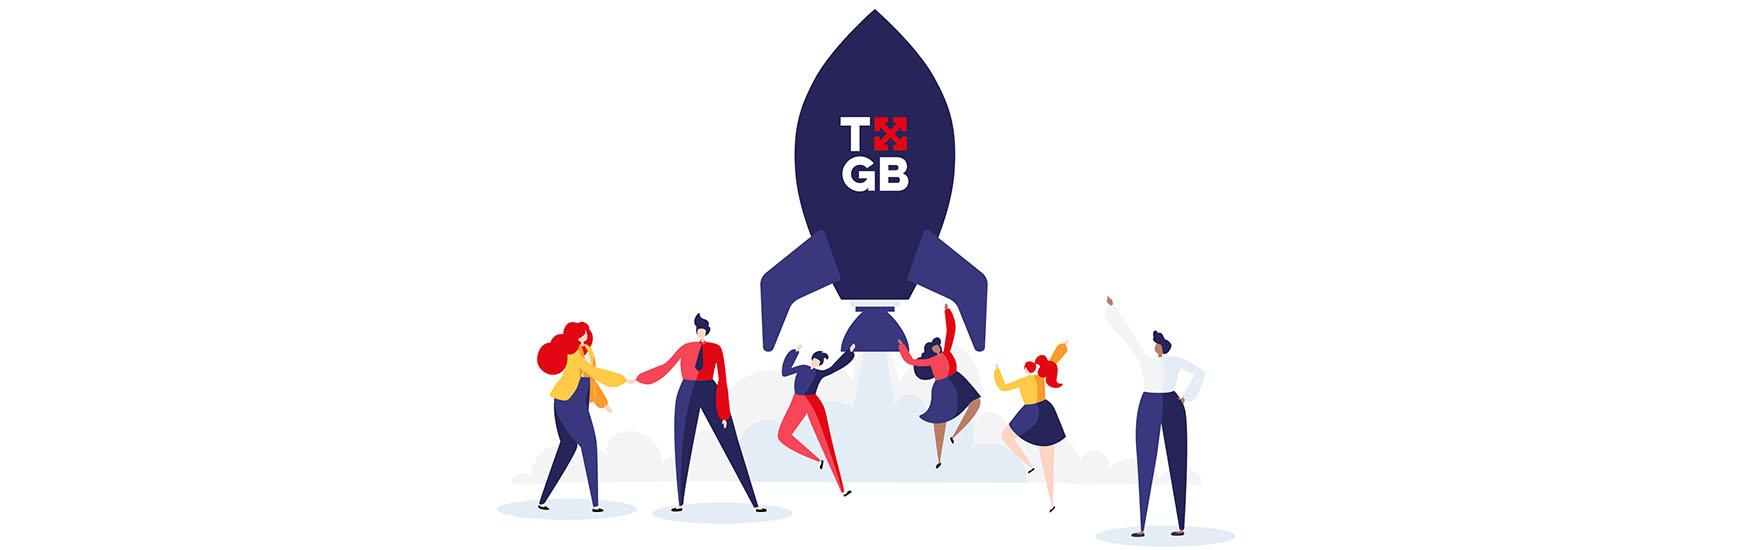 Six human cartoon figures celebrating the take-off of a blue rocket with the TXGB logo on.